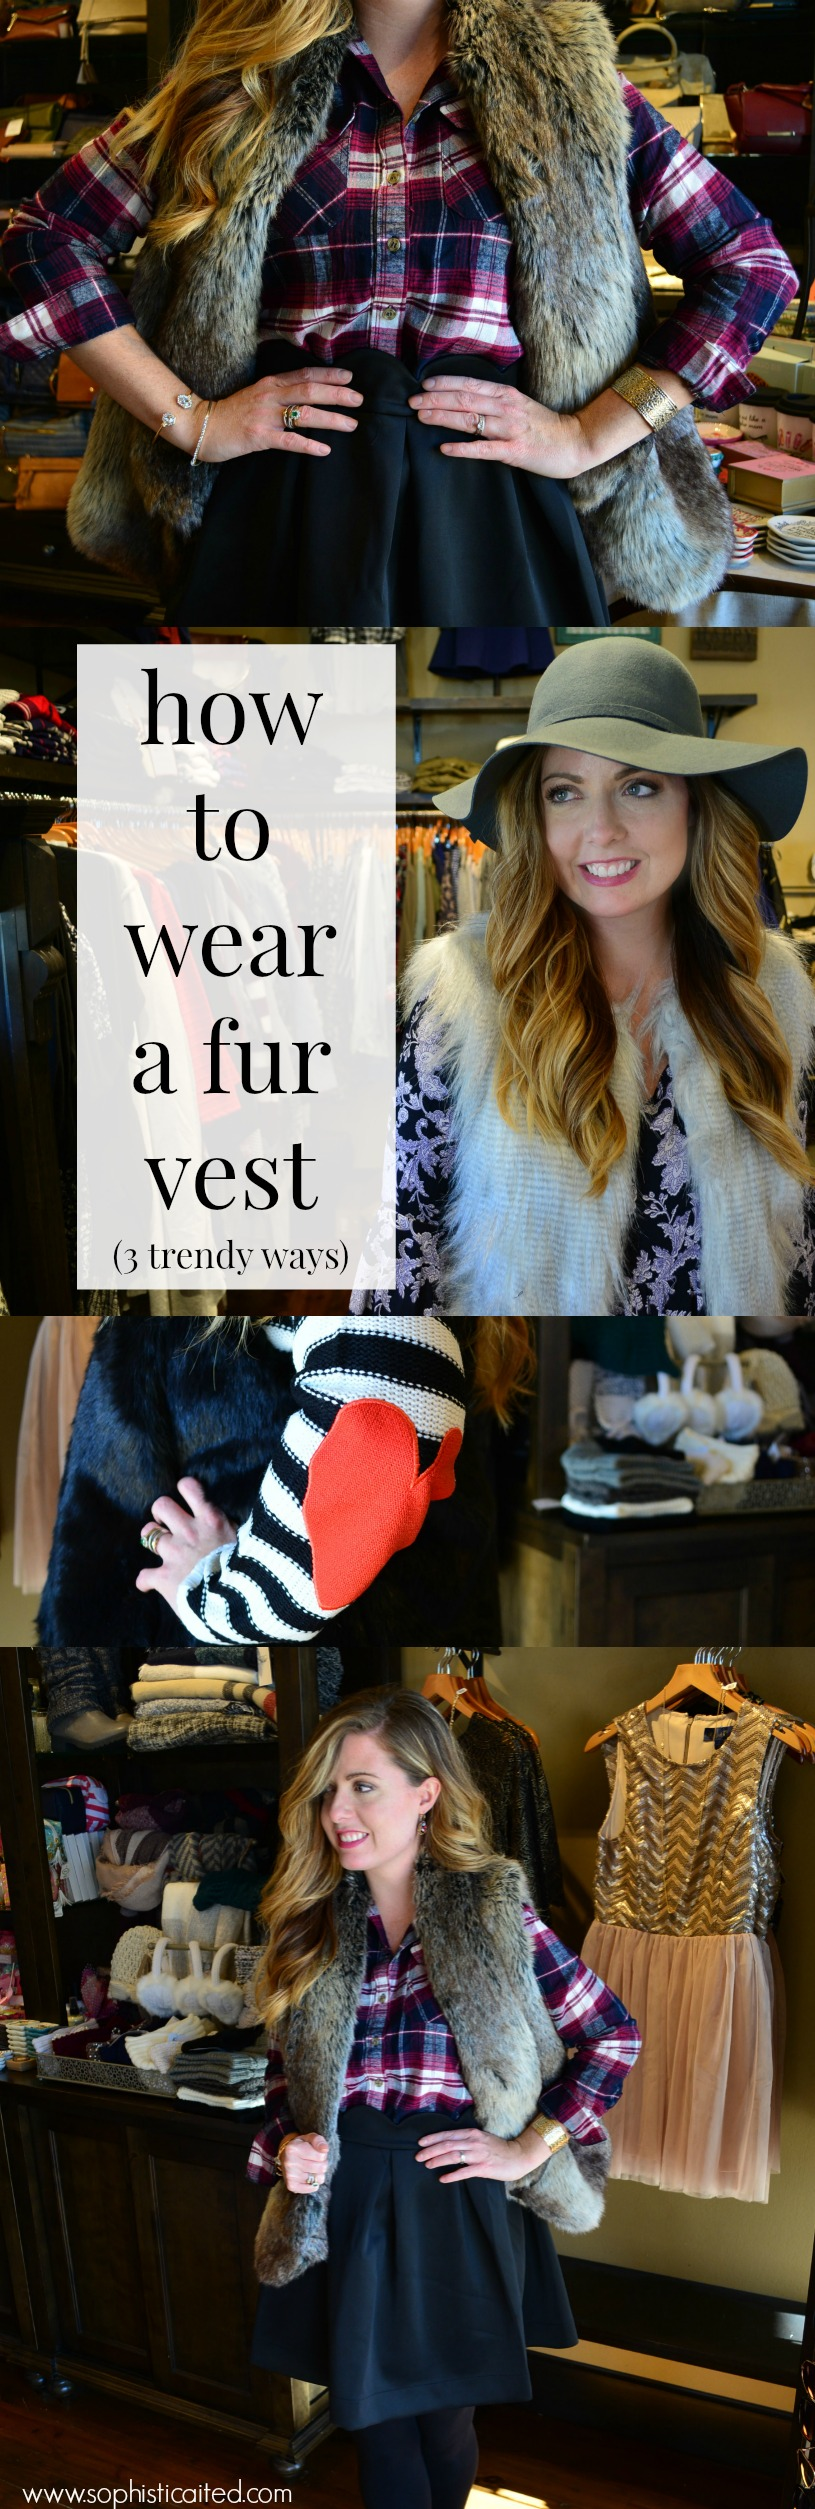 How to style fur vests on Sophisticaited